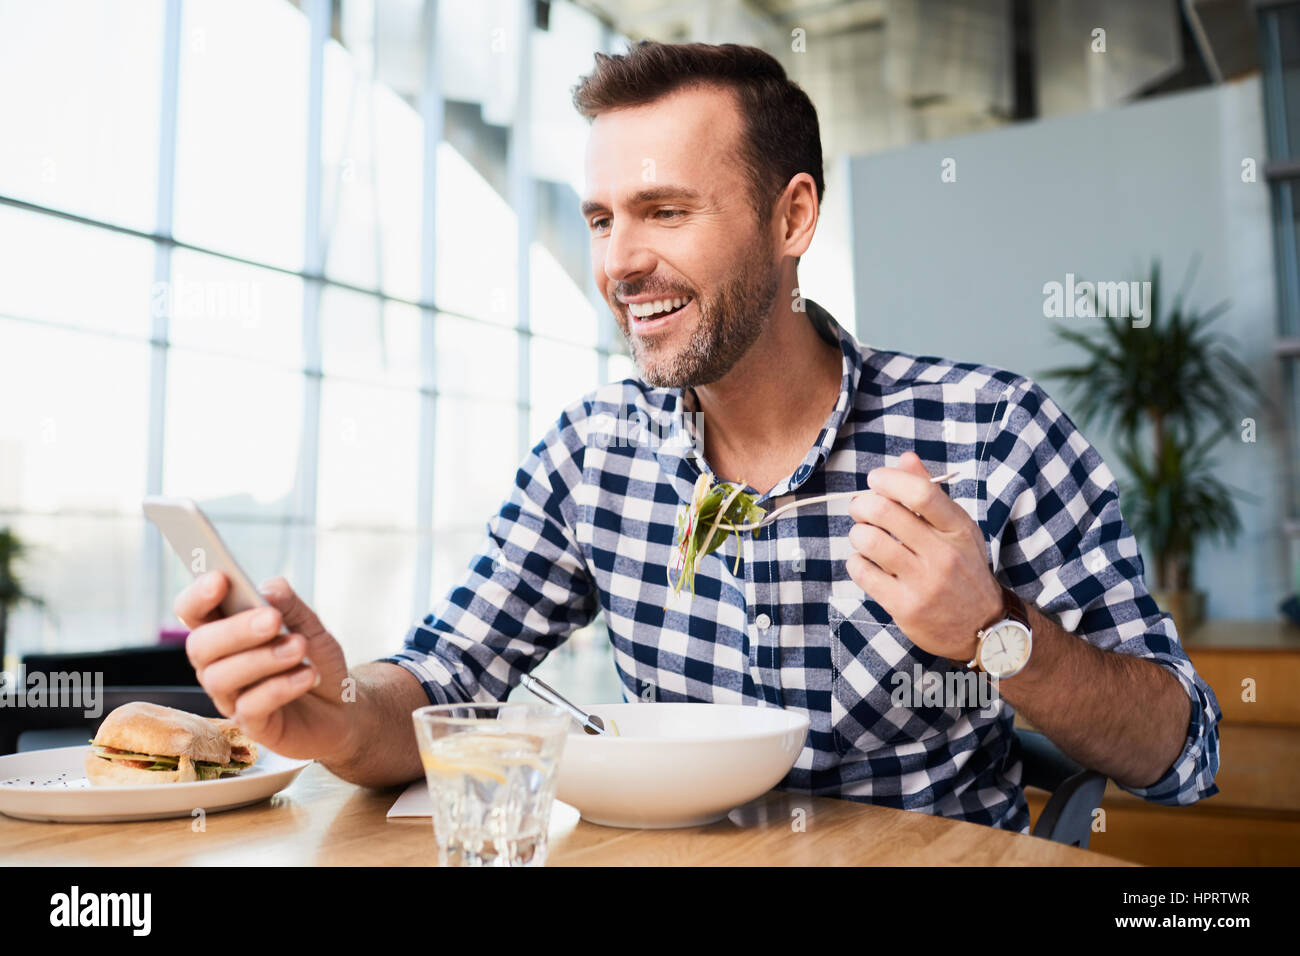 Handsome man in cafe holding fork in one hand and smartphone in another, looking at smartphone and smiling Stock Photo